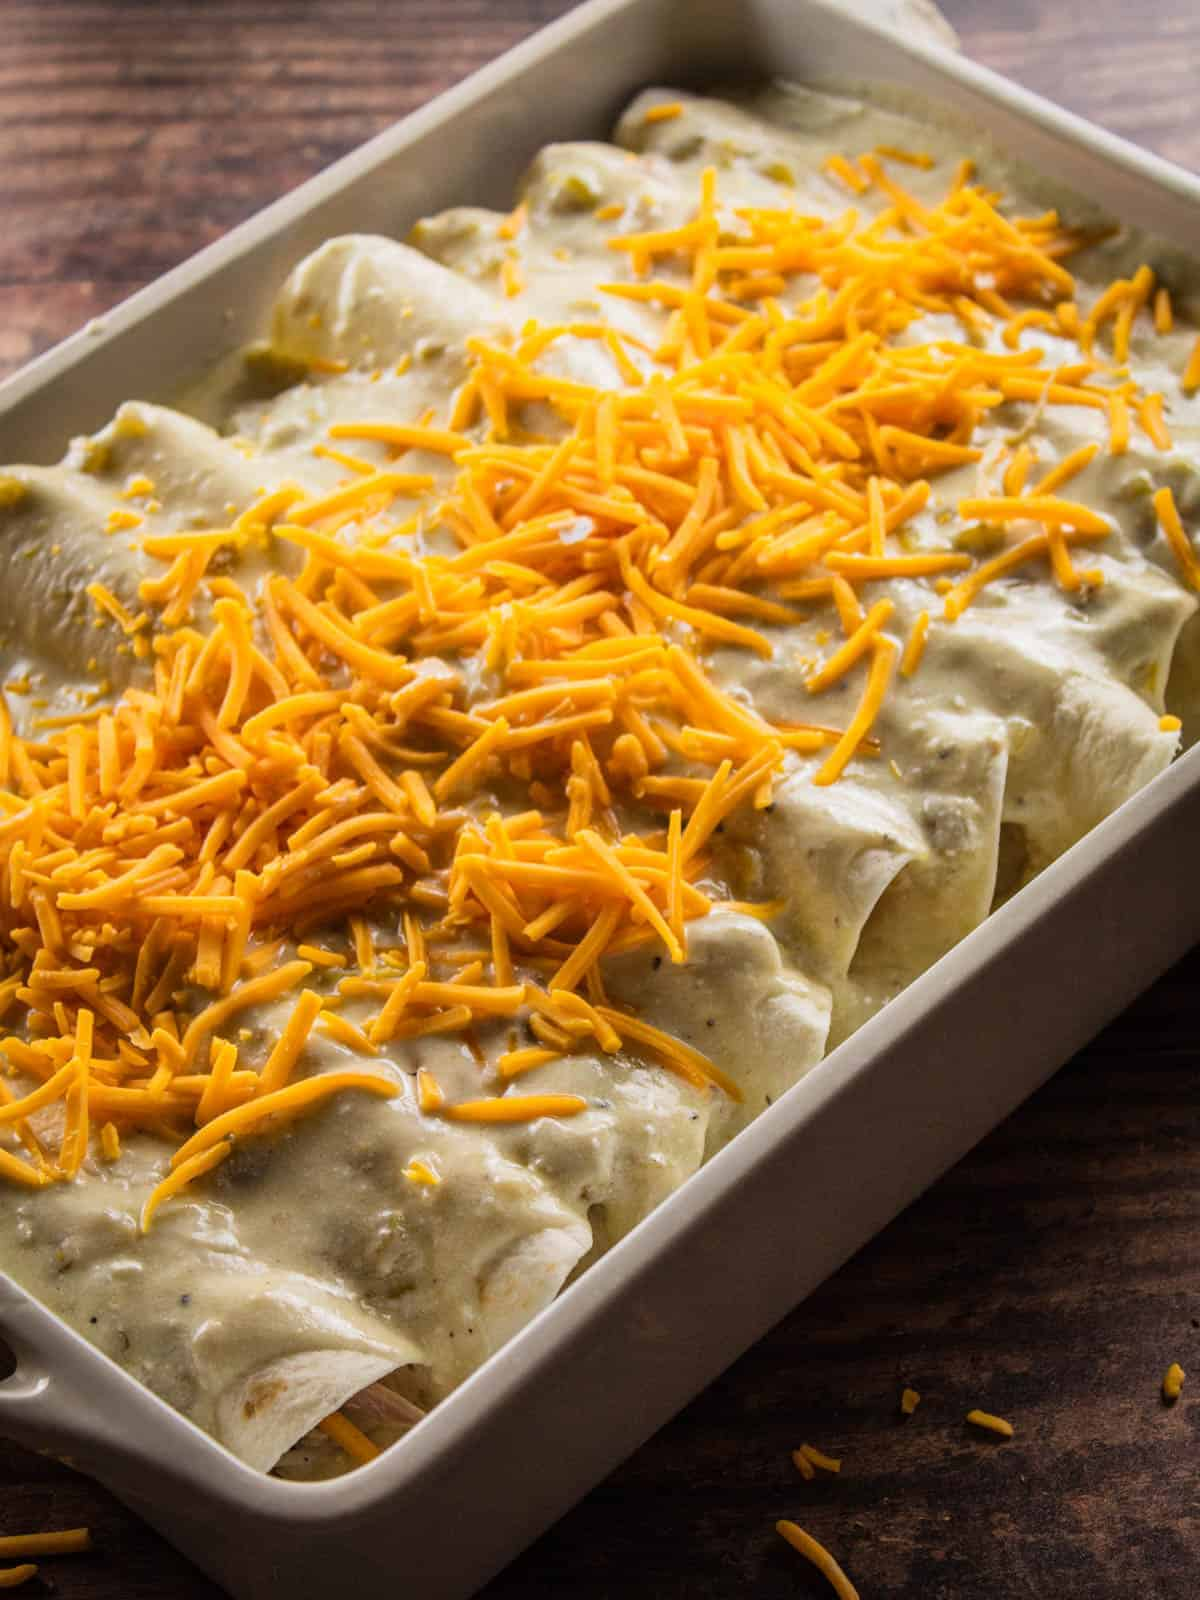 enchiladas topped with sauce and cheese before baking